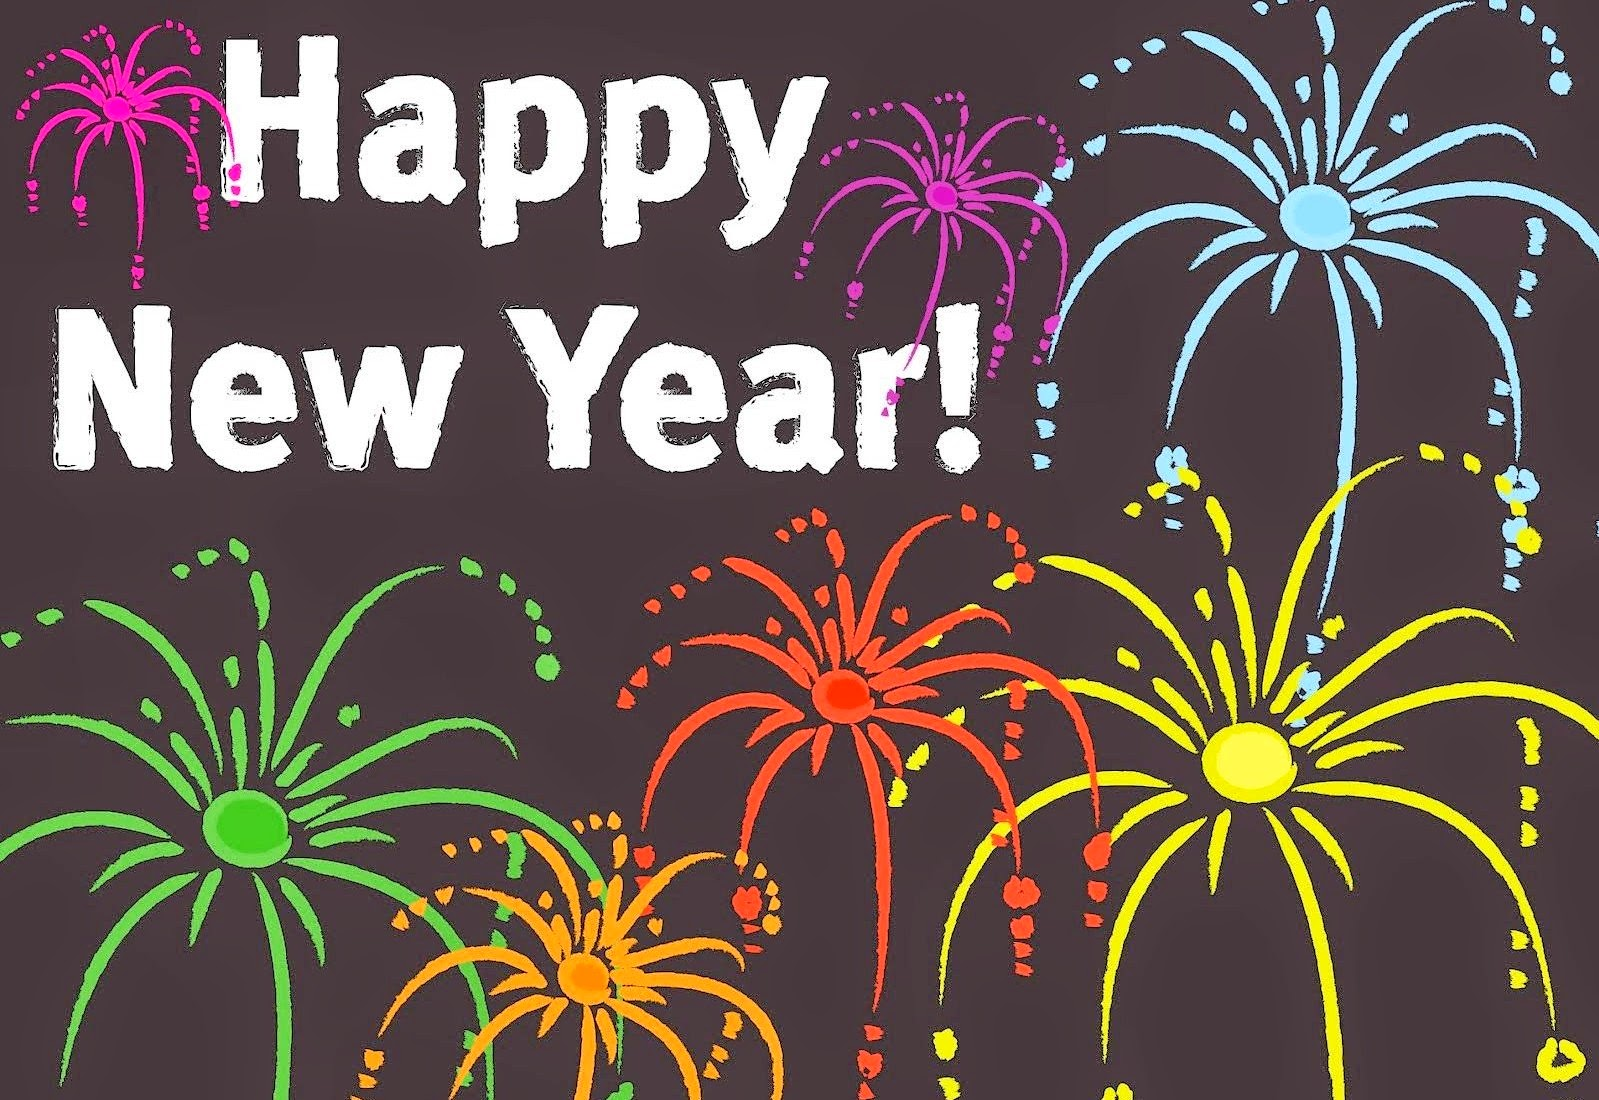 happy new year wishes 2015 free high definition